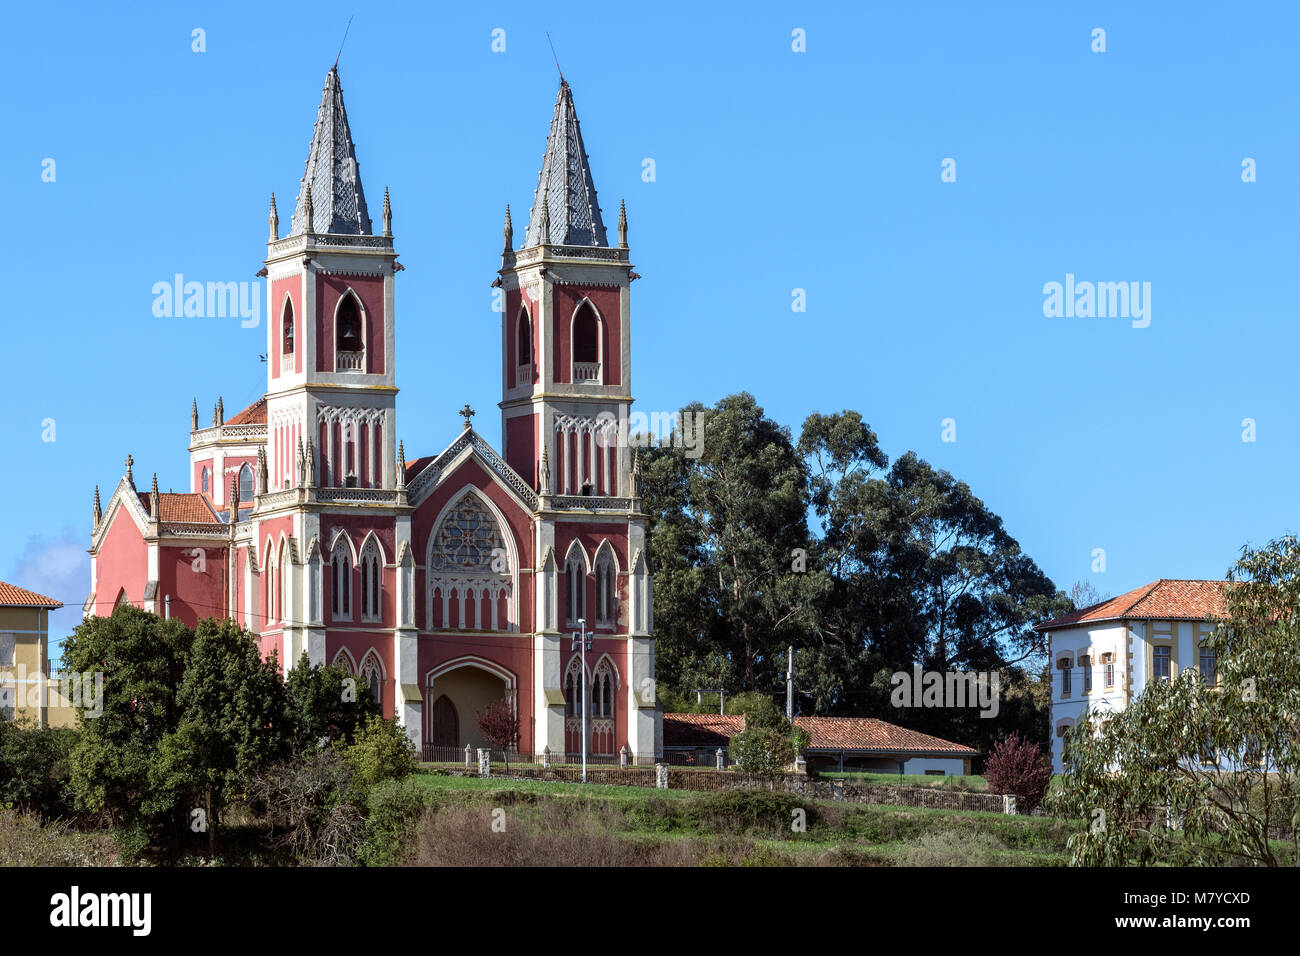 Church in the small town of Corbreces in the Cantabria region of northern Spain. - Stock Image